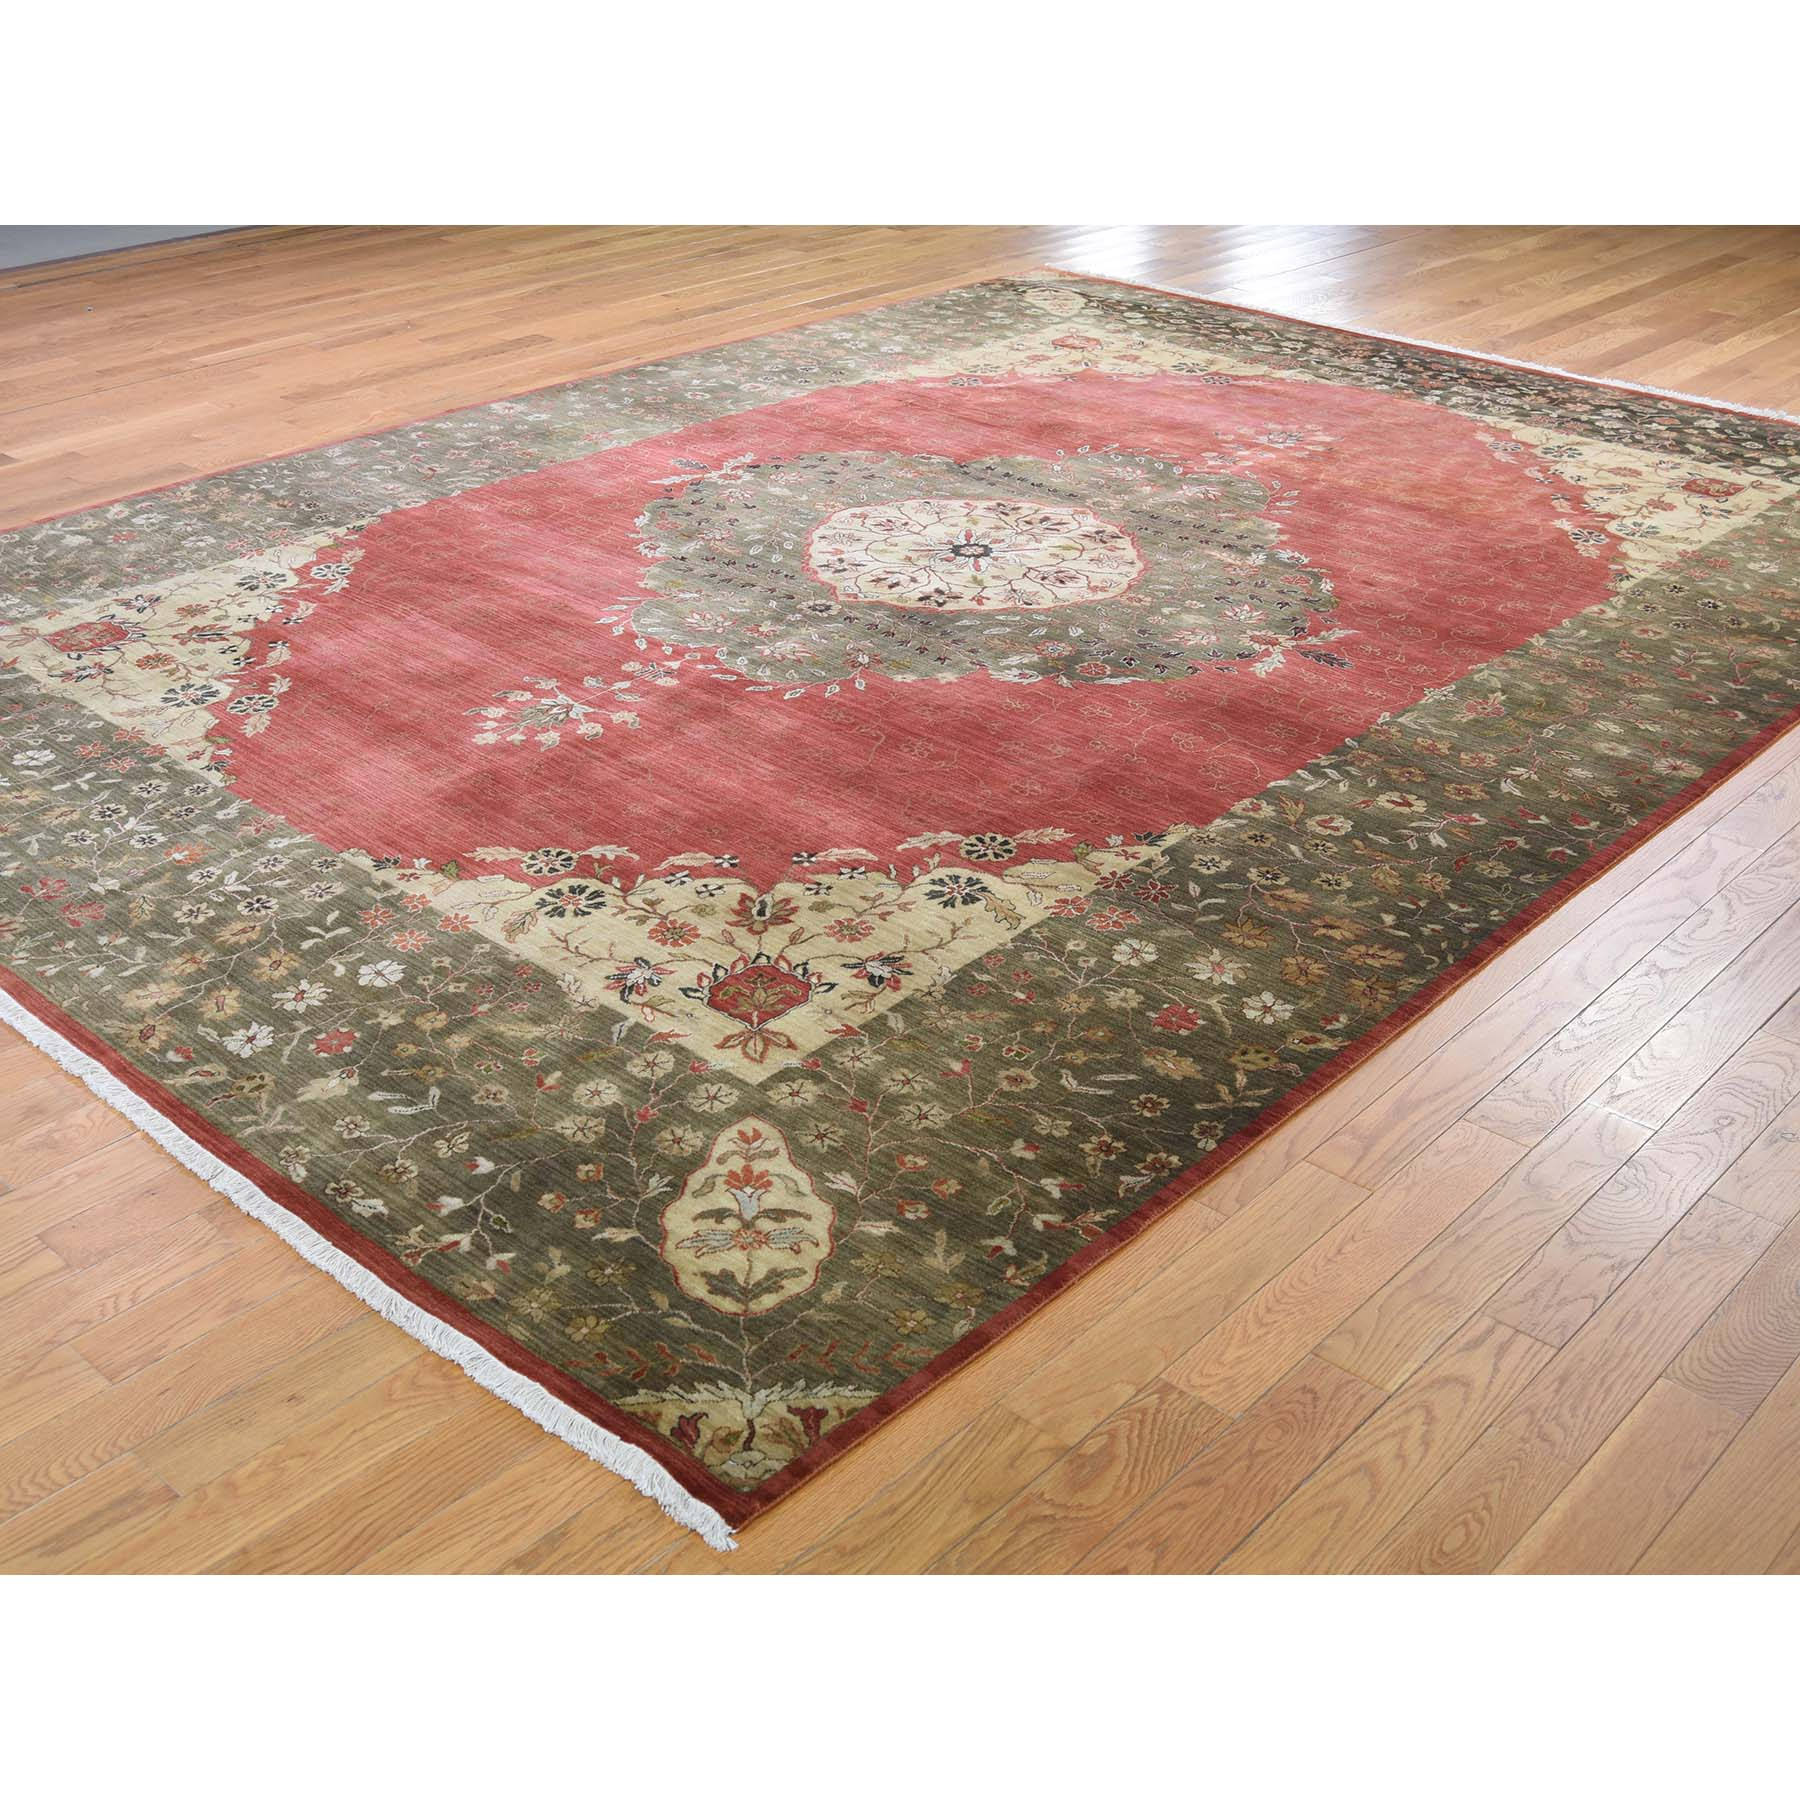 """9'x12'2"""" Red,Antiqued Tabriz 300 KPSI Vegetable Dyes Hand-Knotted Oriental Rug"""